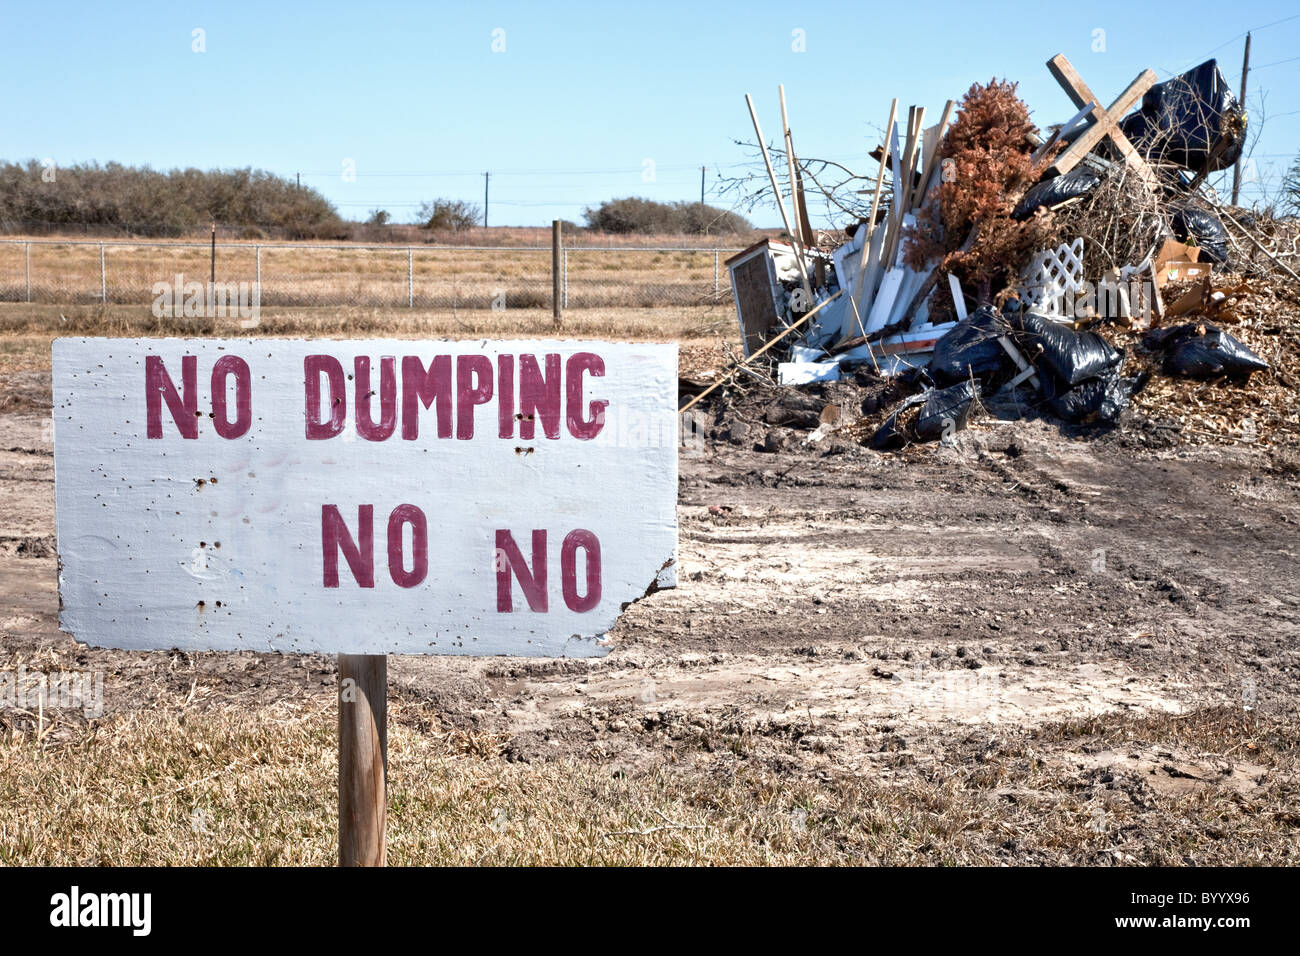 Sign 'no dumping', trash piled - Stock Image